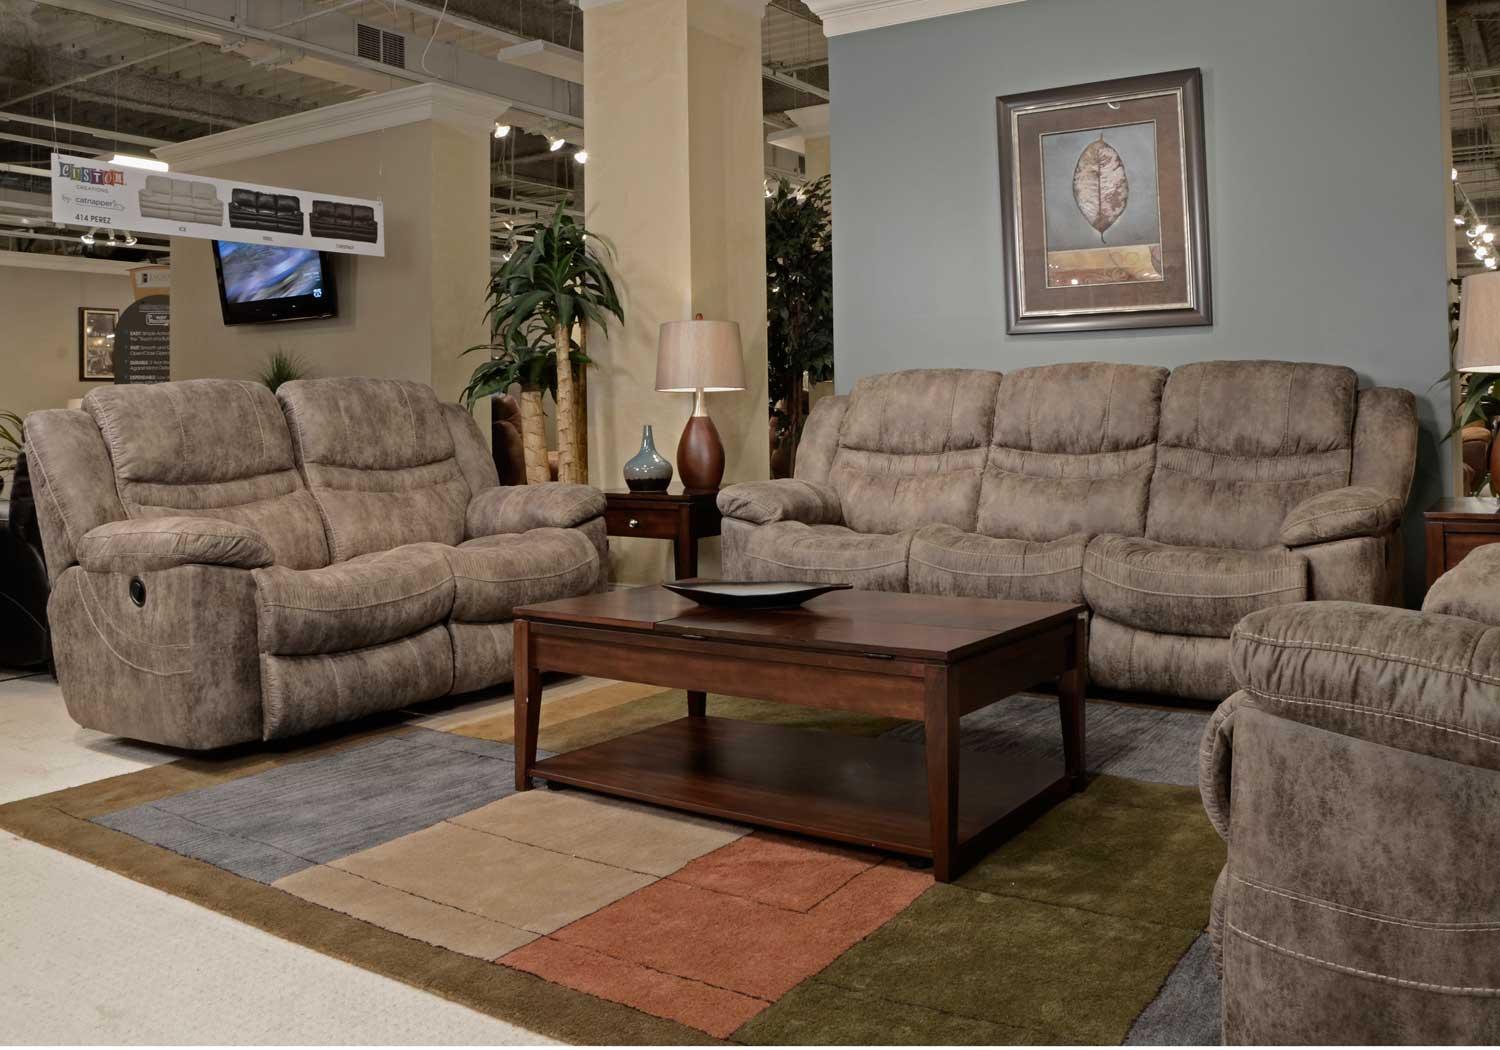 Beautiful CatNapper Valiant Reclining Sofa Set   Marble